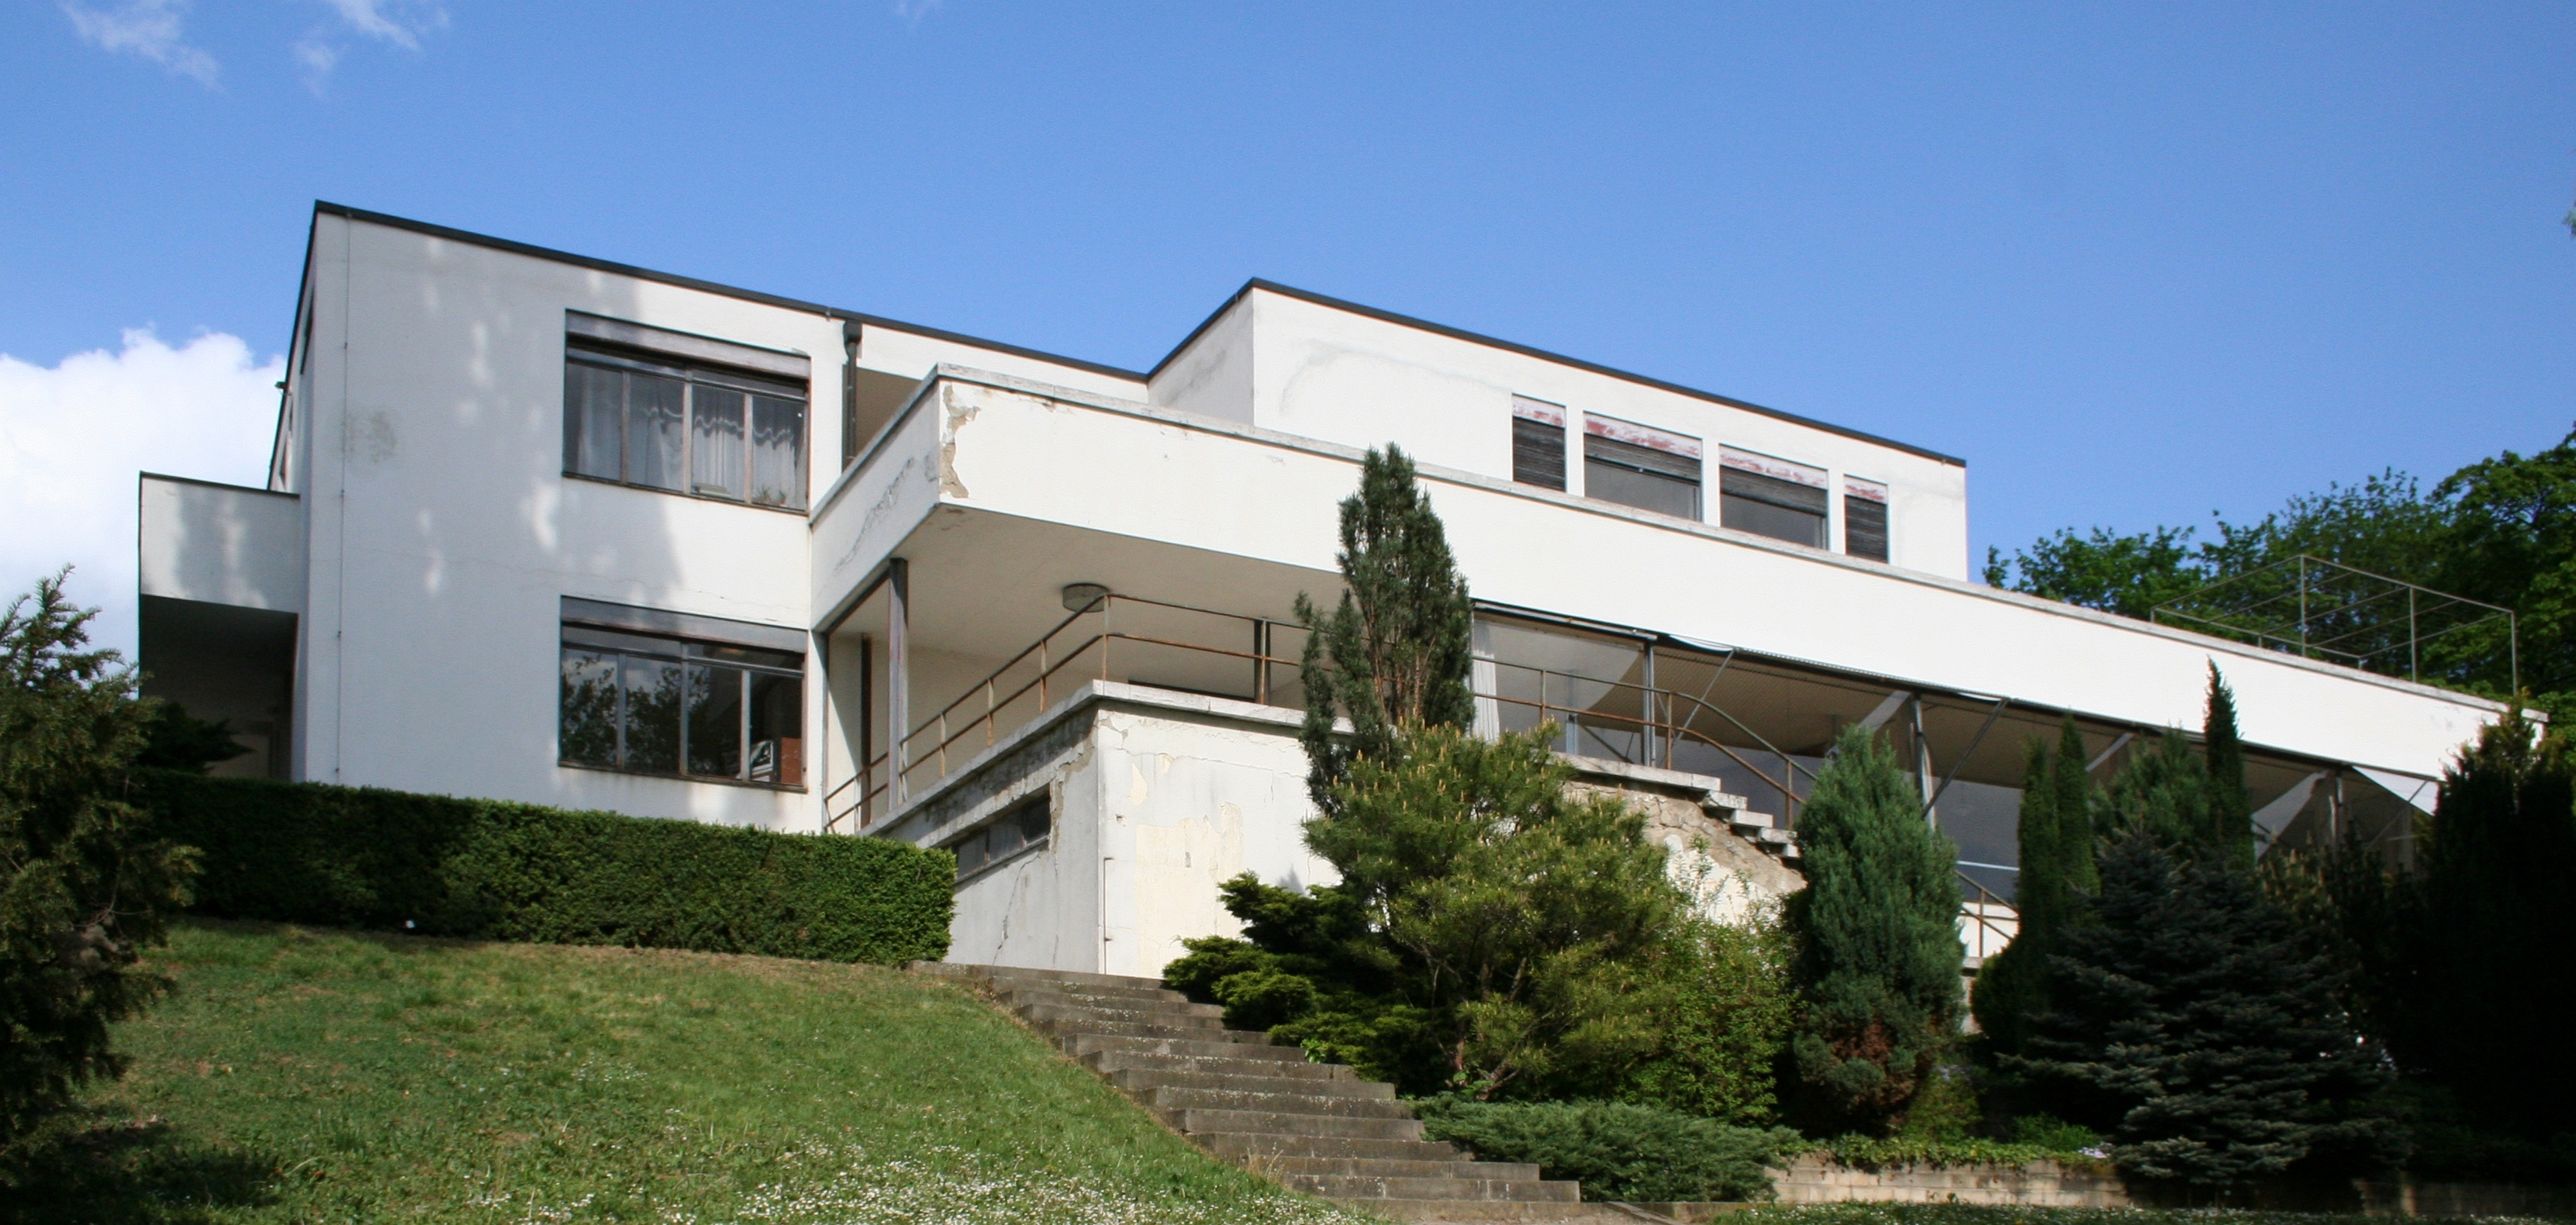 File villa tugendhat wikimedia commons for Moderne architektur villa